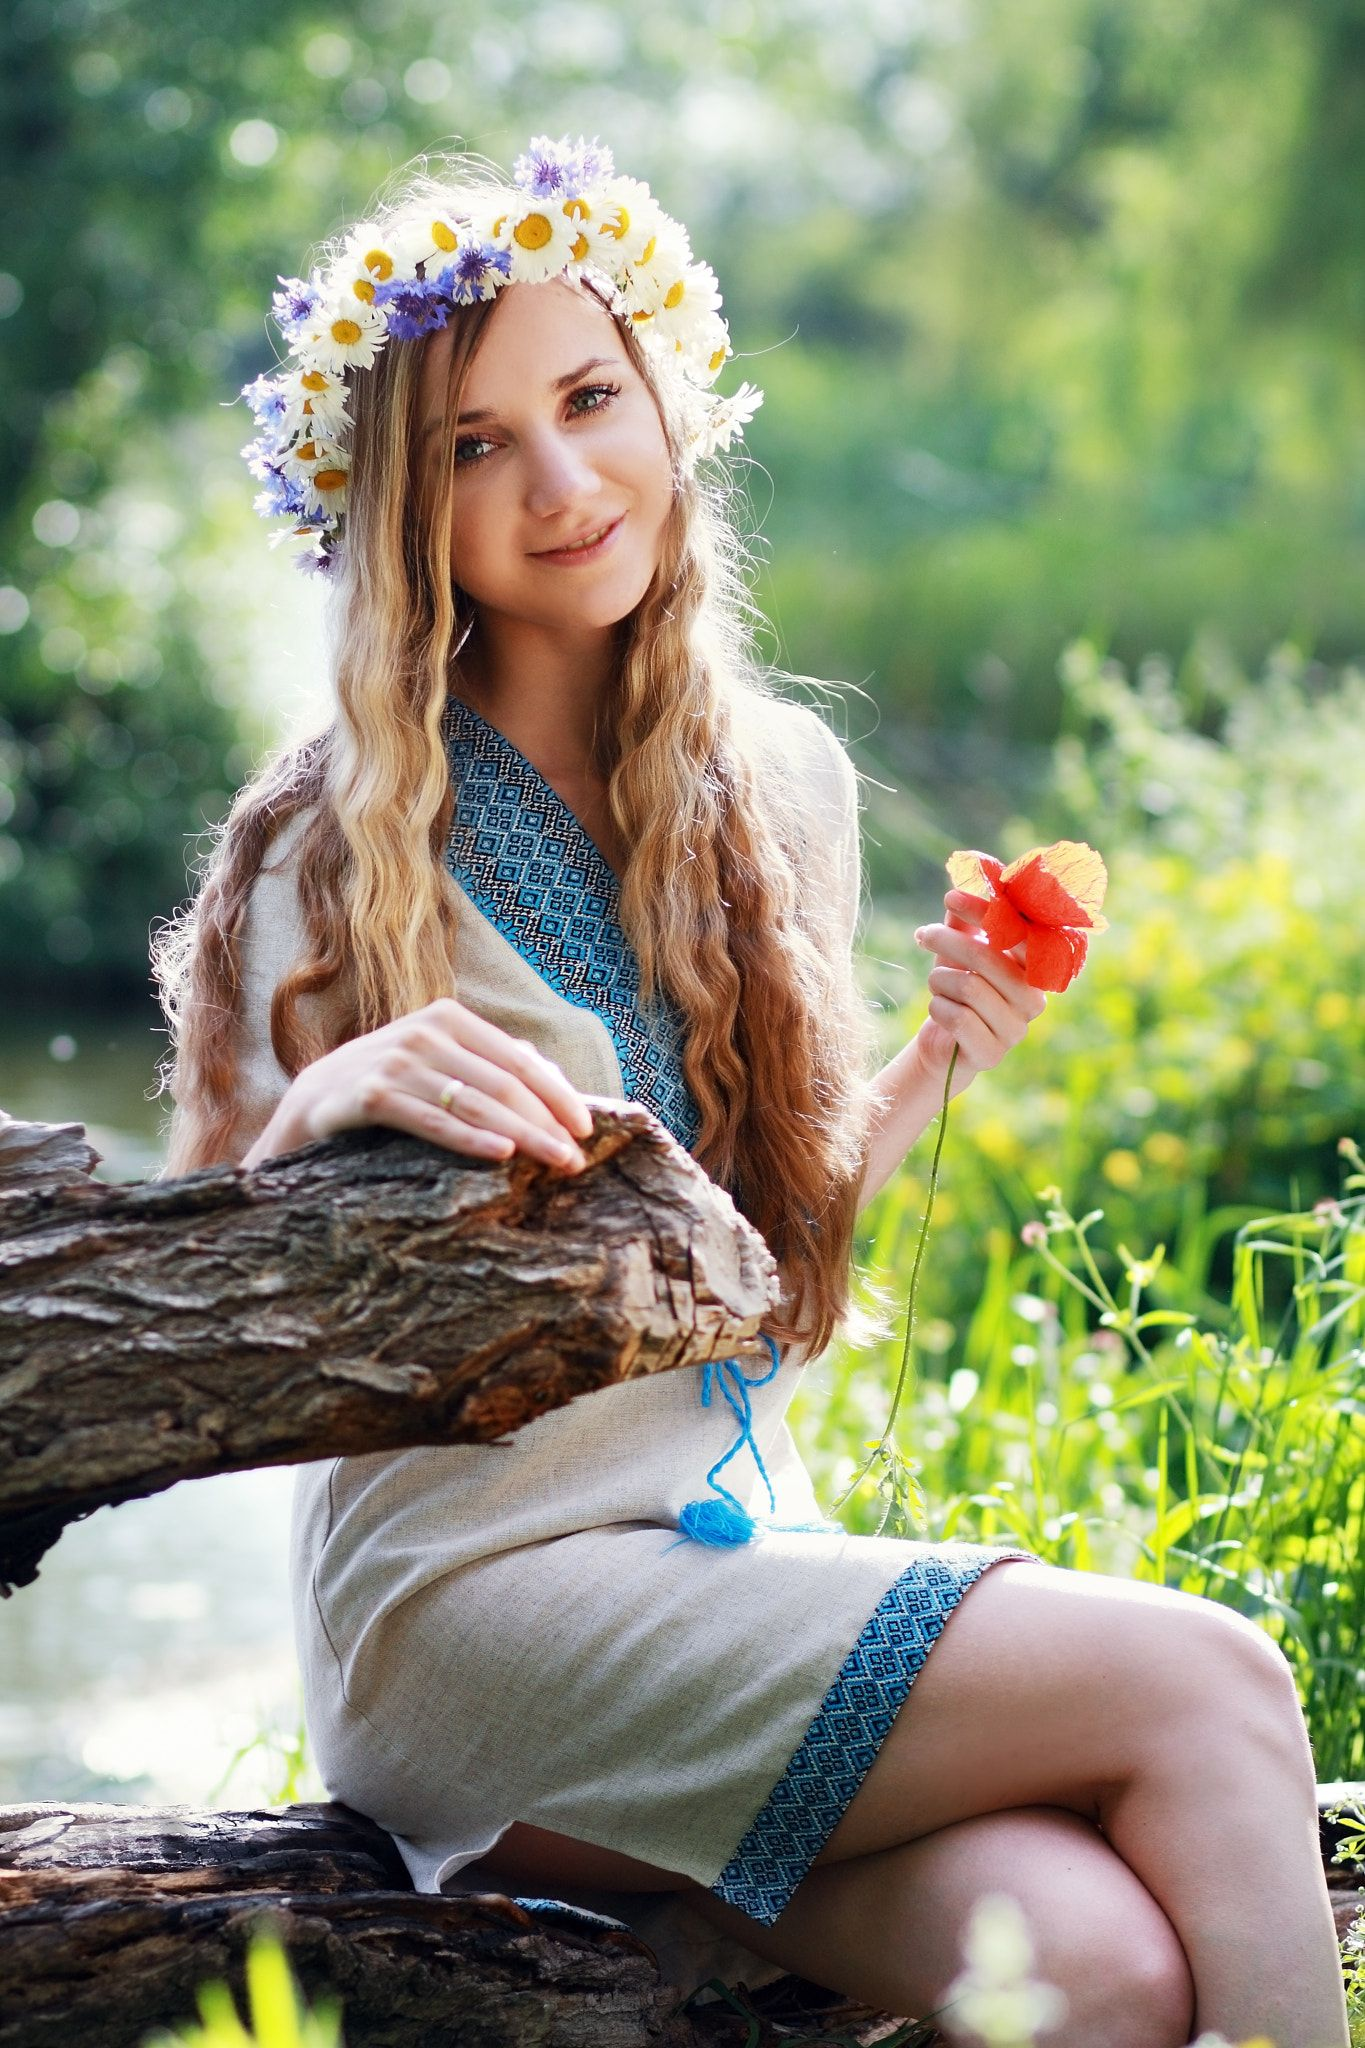 Beautiful ukrainian woman with flower wreath in fresh summer morning beautiful ukrainian woman with flower wreath in fresh summer morning izmirmasajfo Image collections